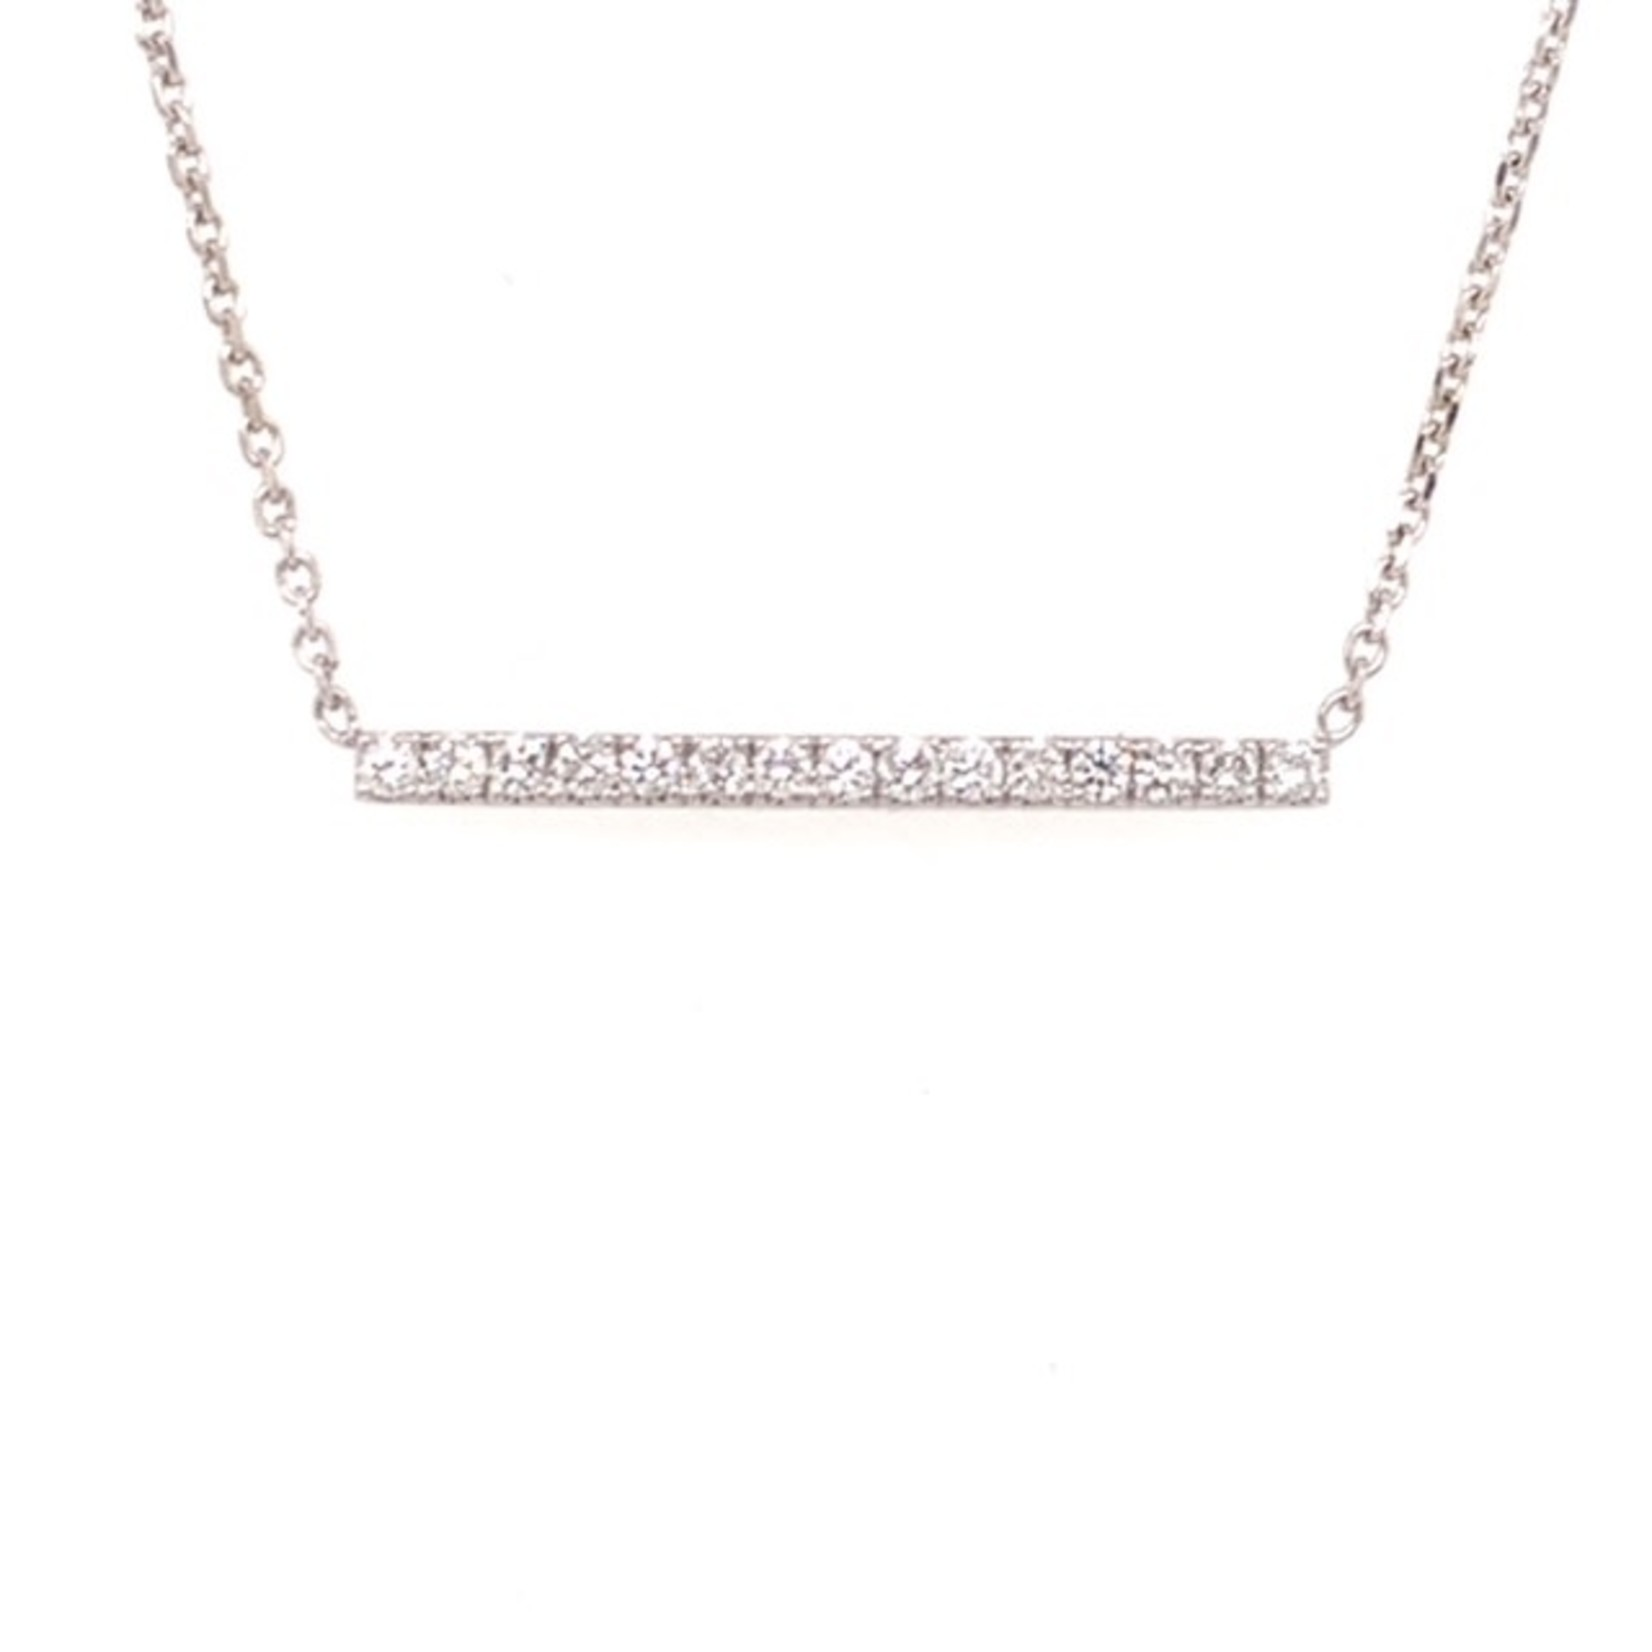 On The Edge Unequivocal Strength Necklace - 10kt/14kt Diamond Pendant